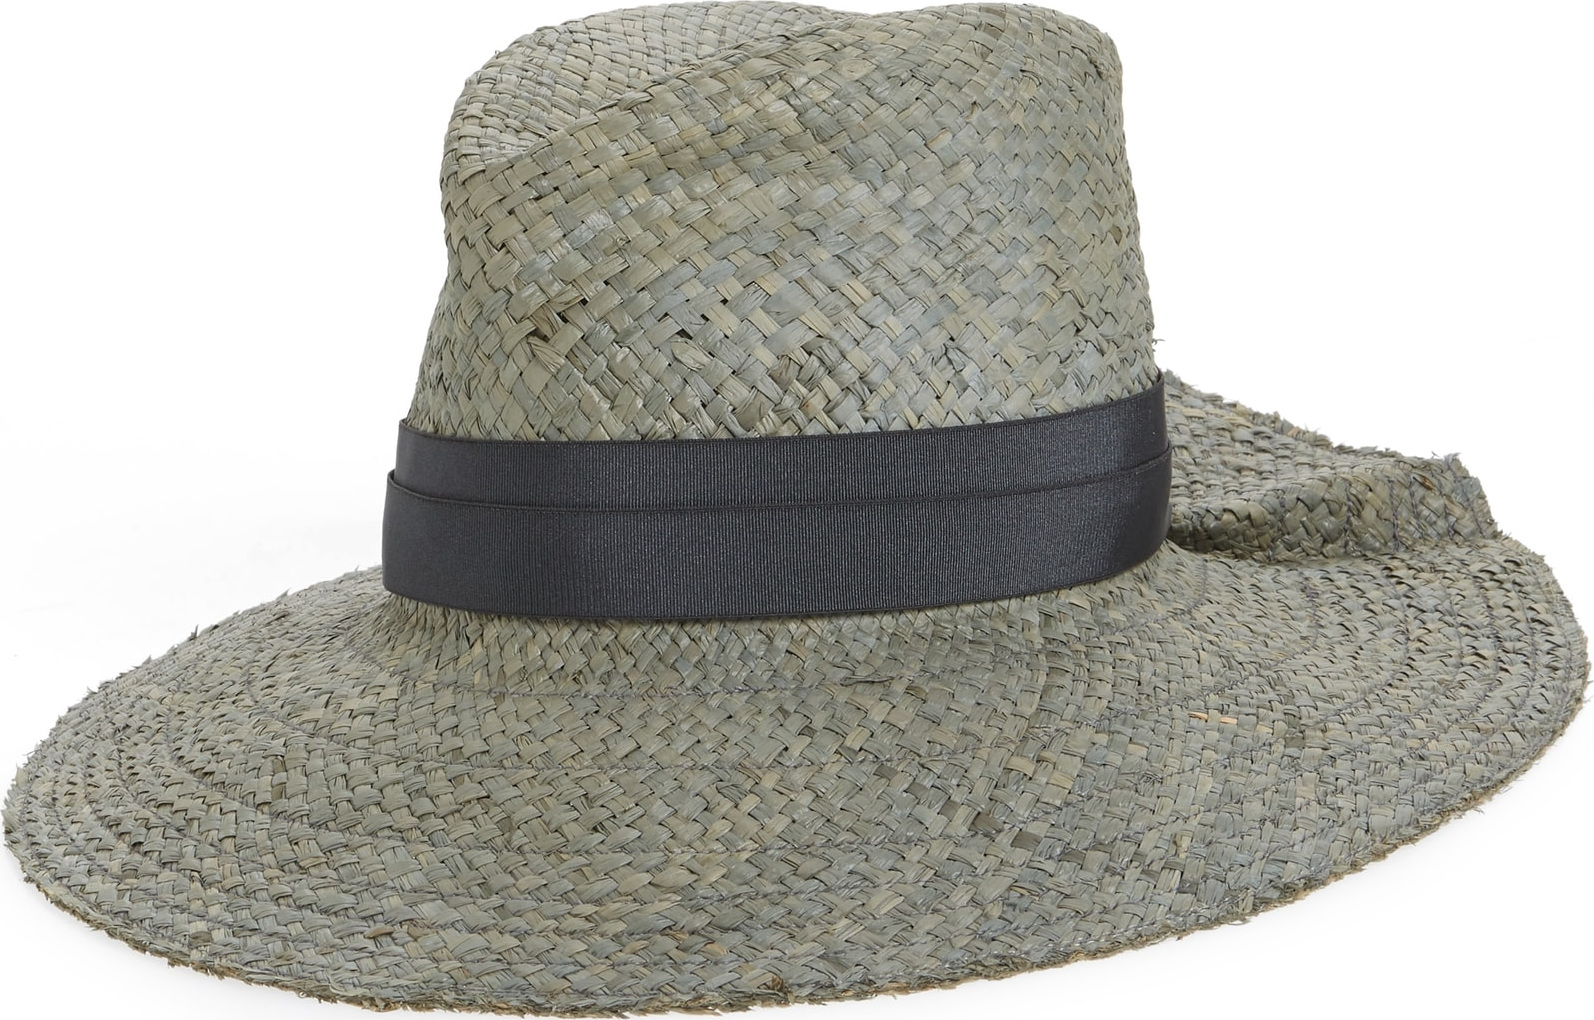 2096a582d3d Lola Hats First Aid Snap Straw Hat - Mkt